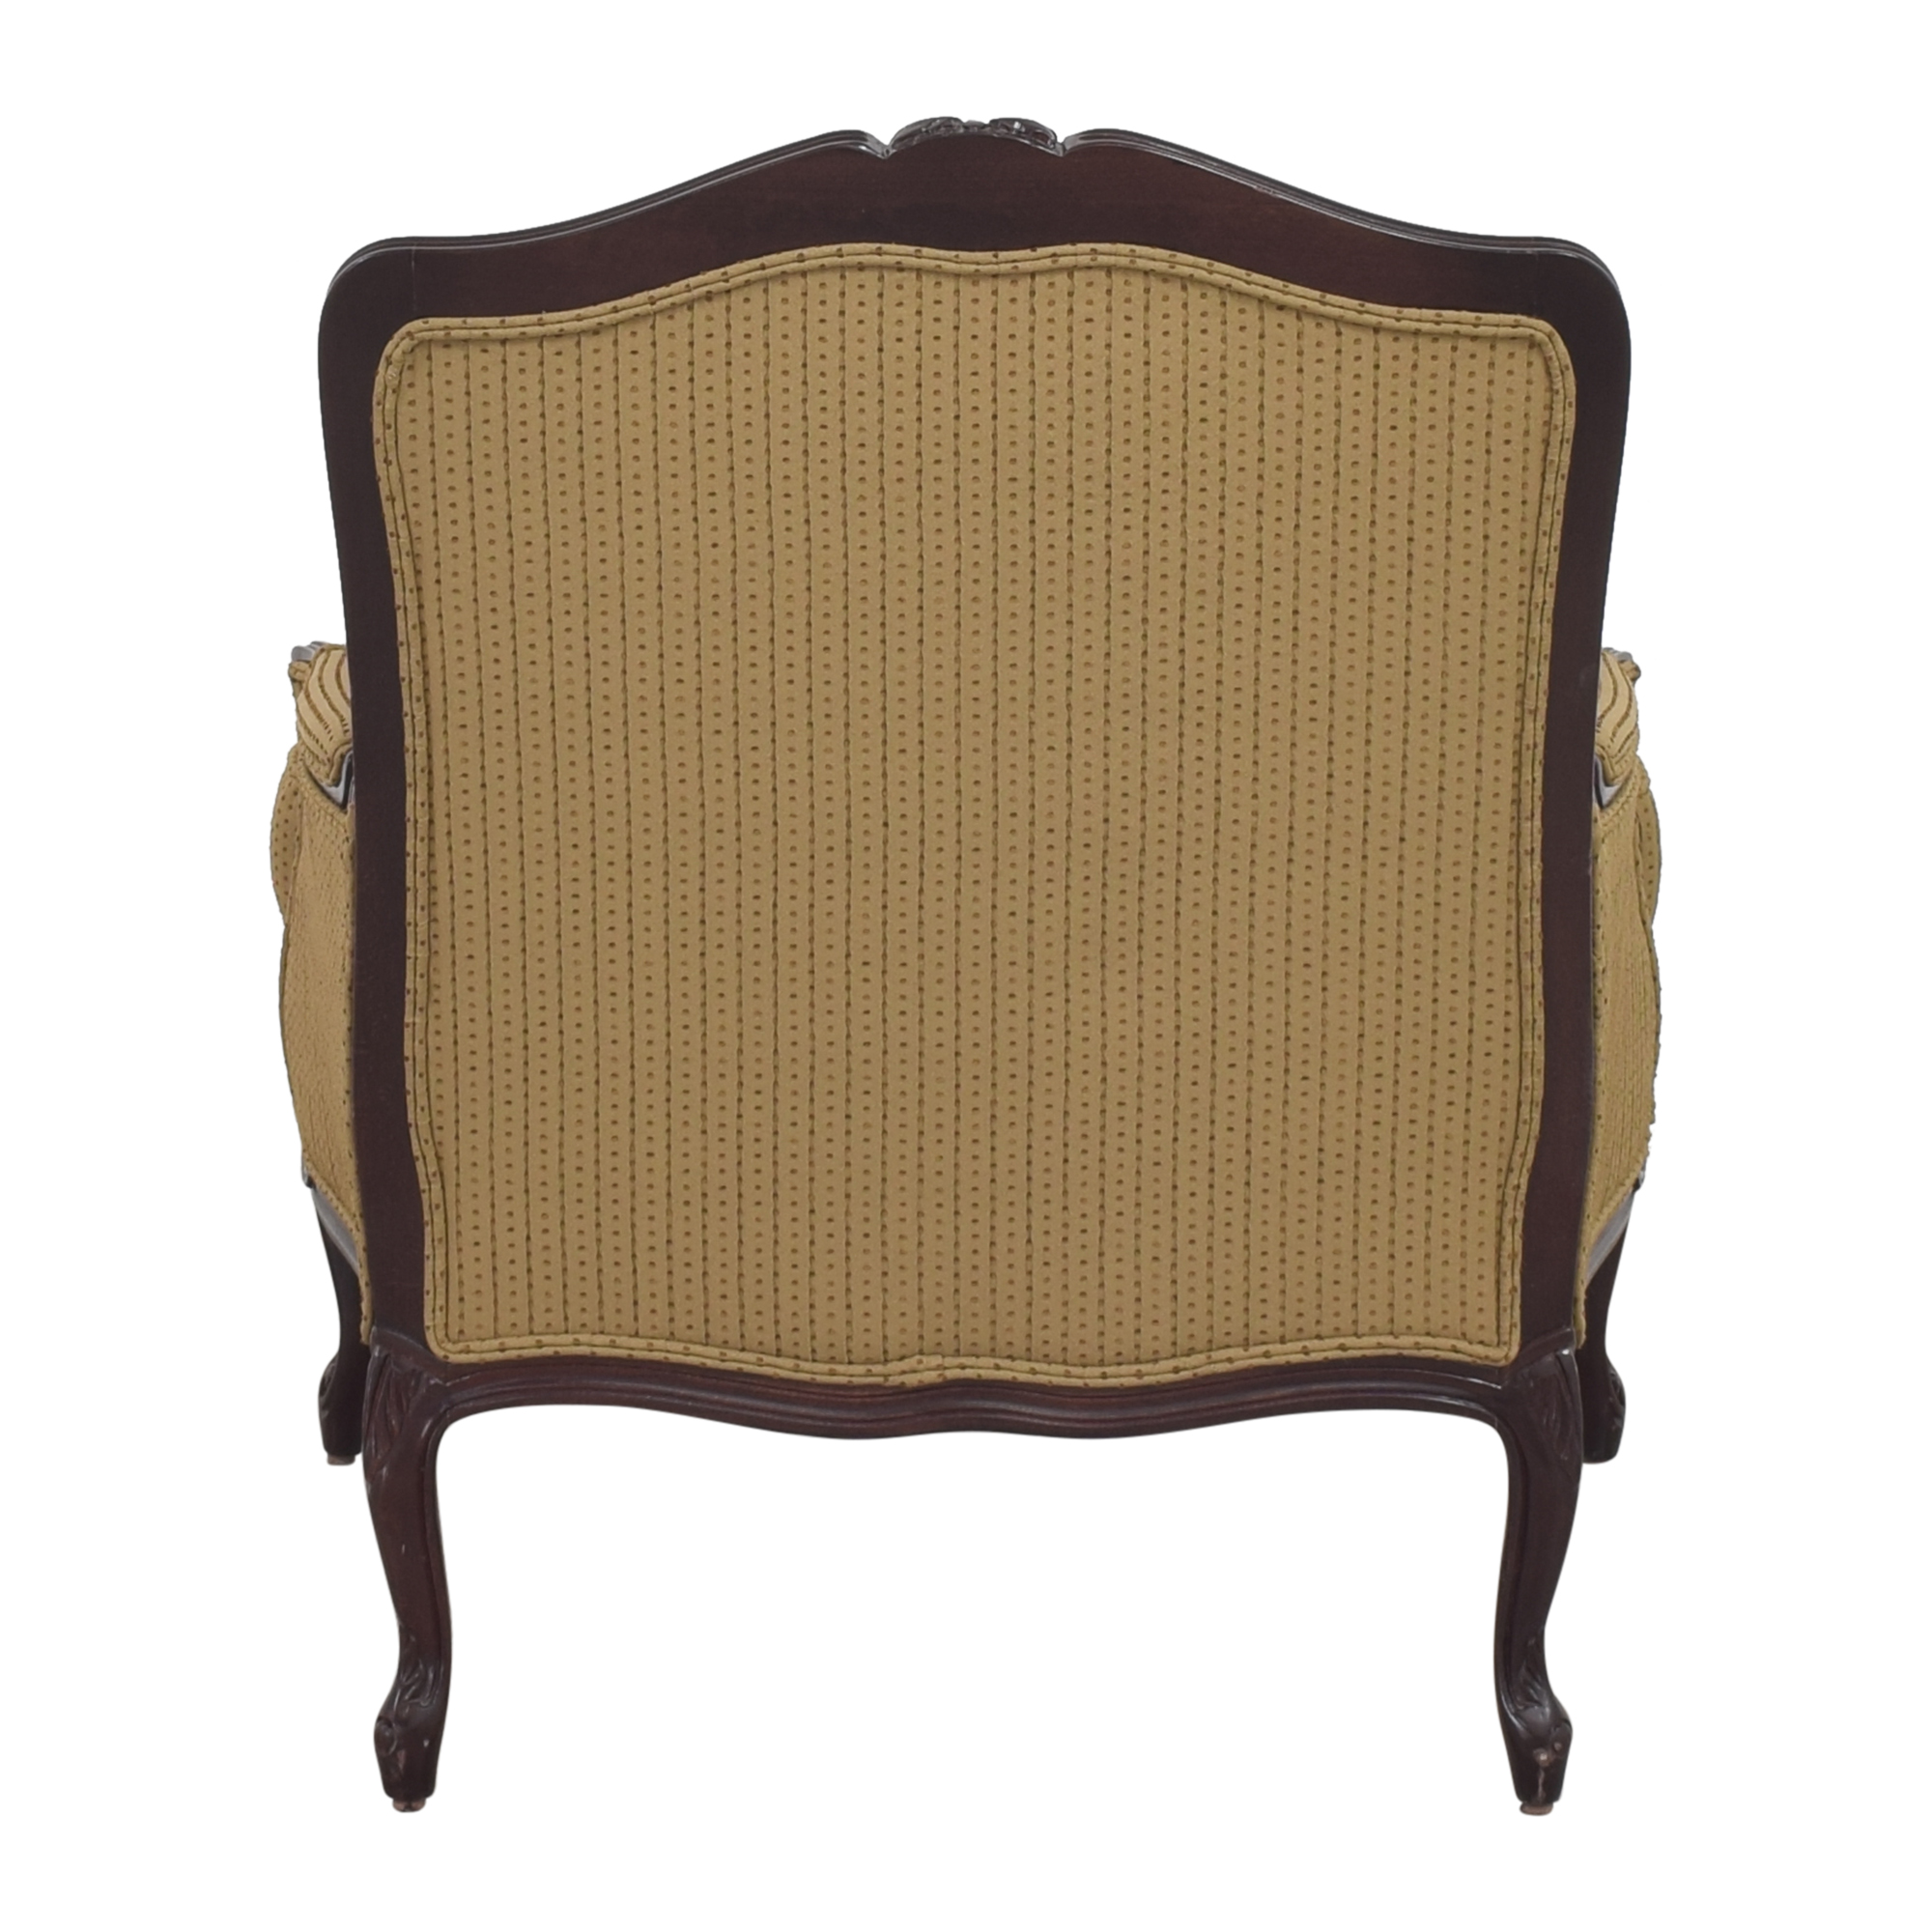 Calico Calico Bergere Accent Chair for sale